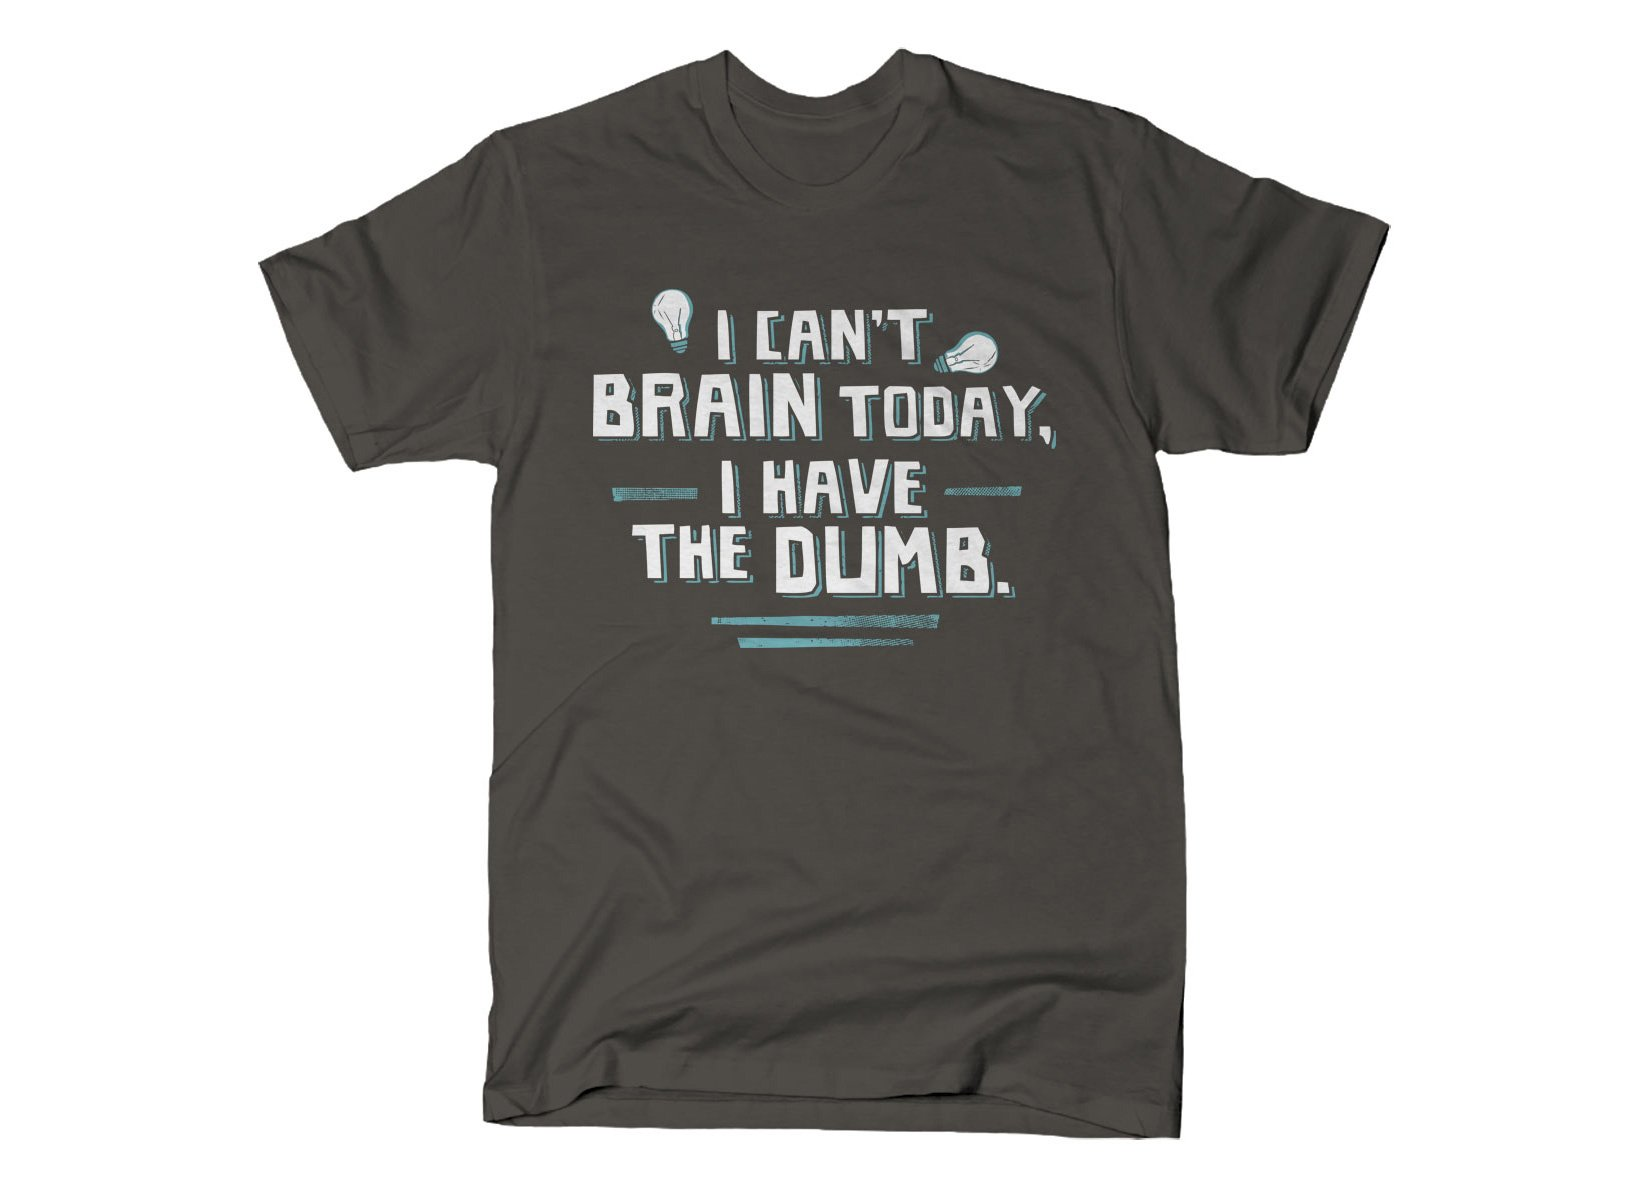 I Can't Brain Today, I Have The Dumb. on Mens T-Shirt